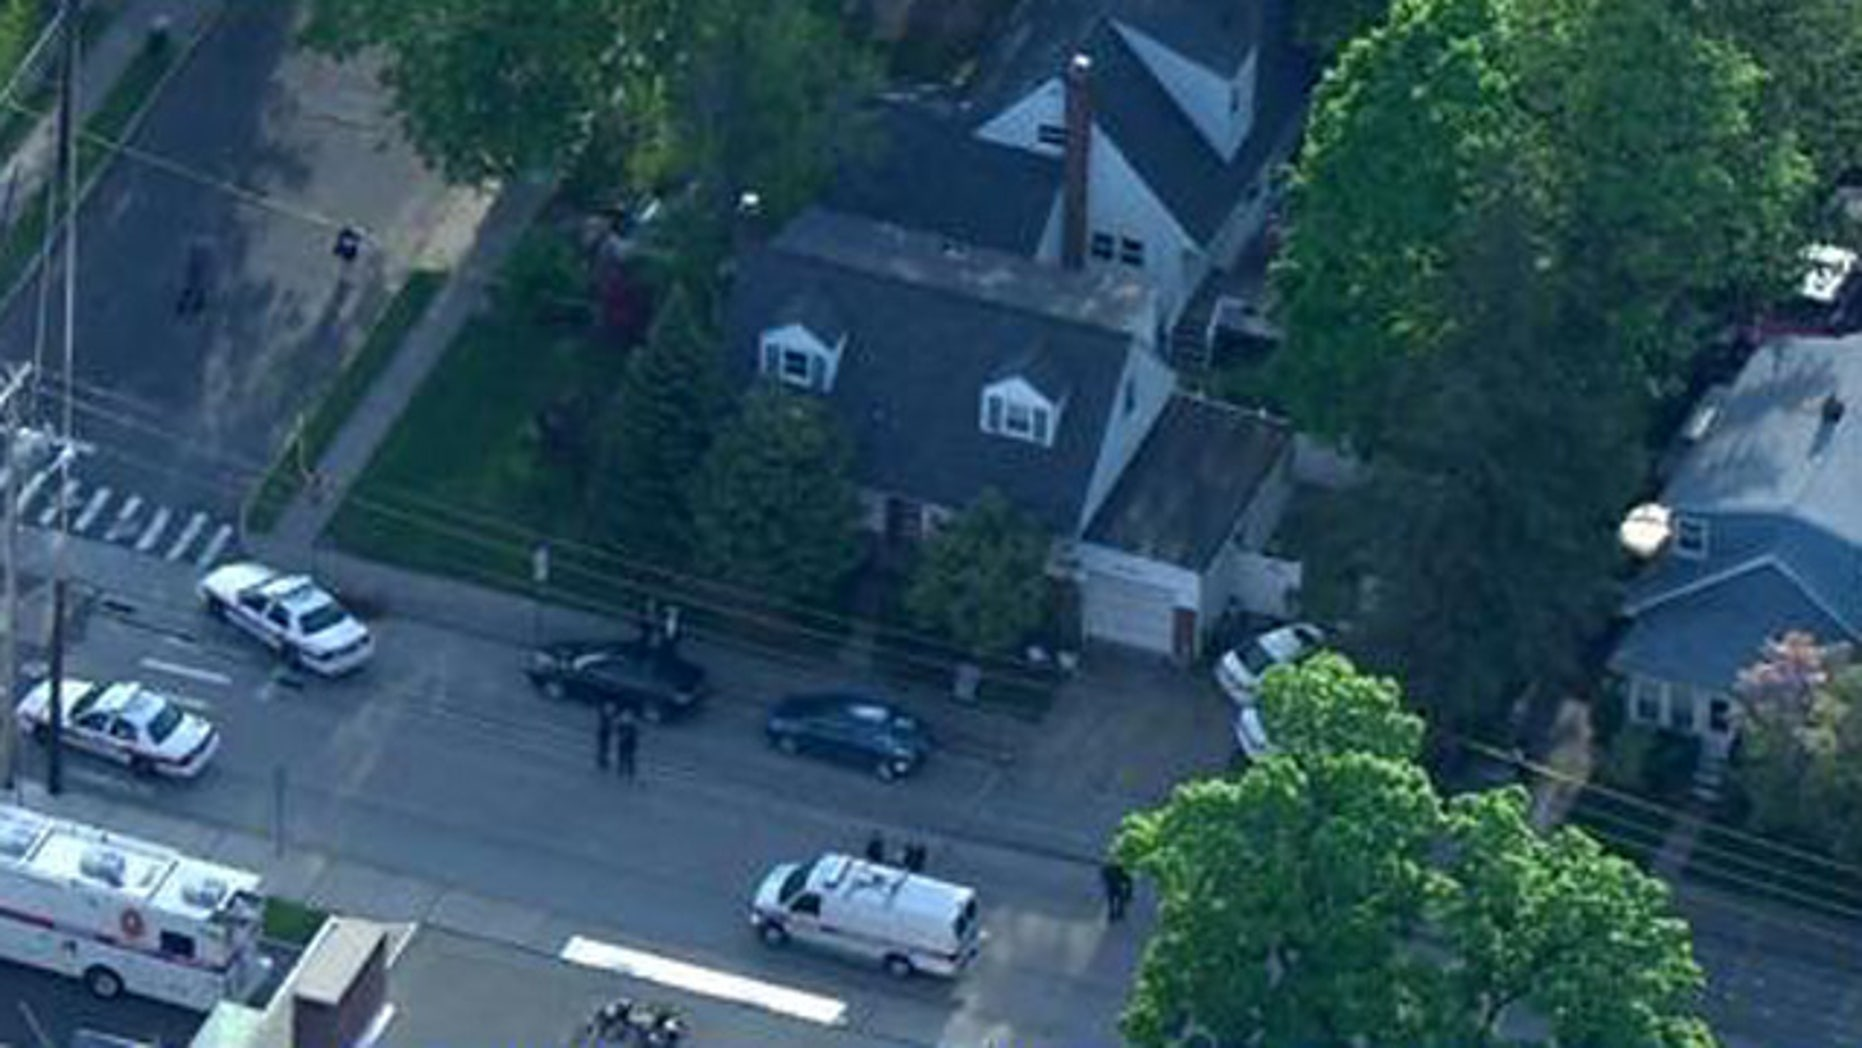 Police say a female Hofstra University student was shot and killed during an apparent home-invasion robbery in Uniondale, Long Island.